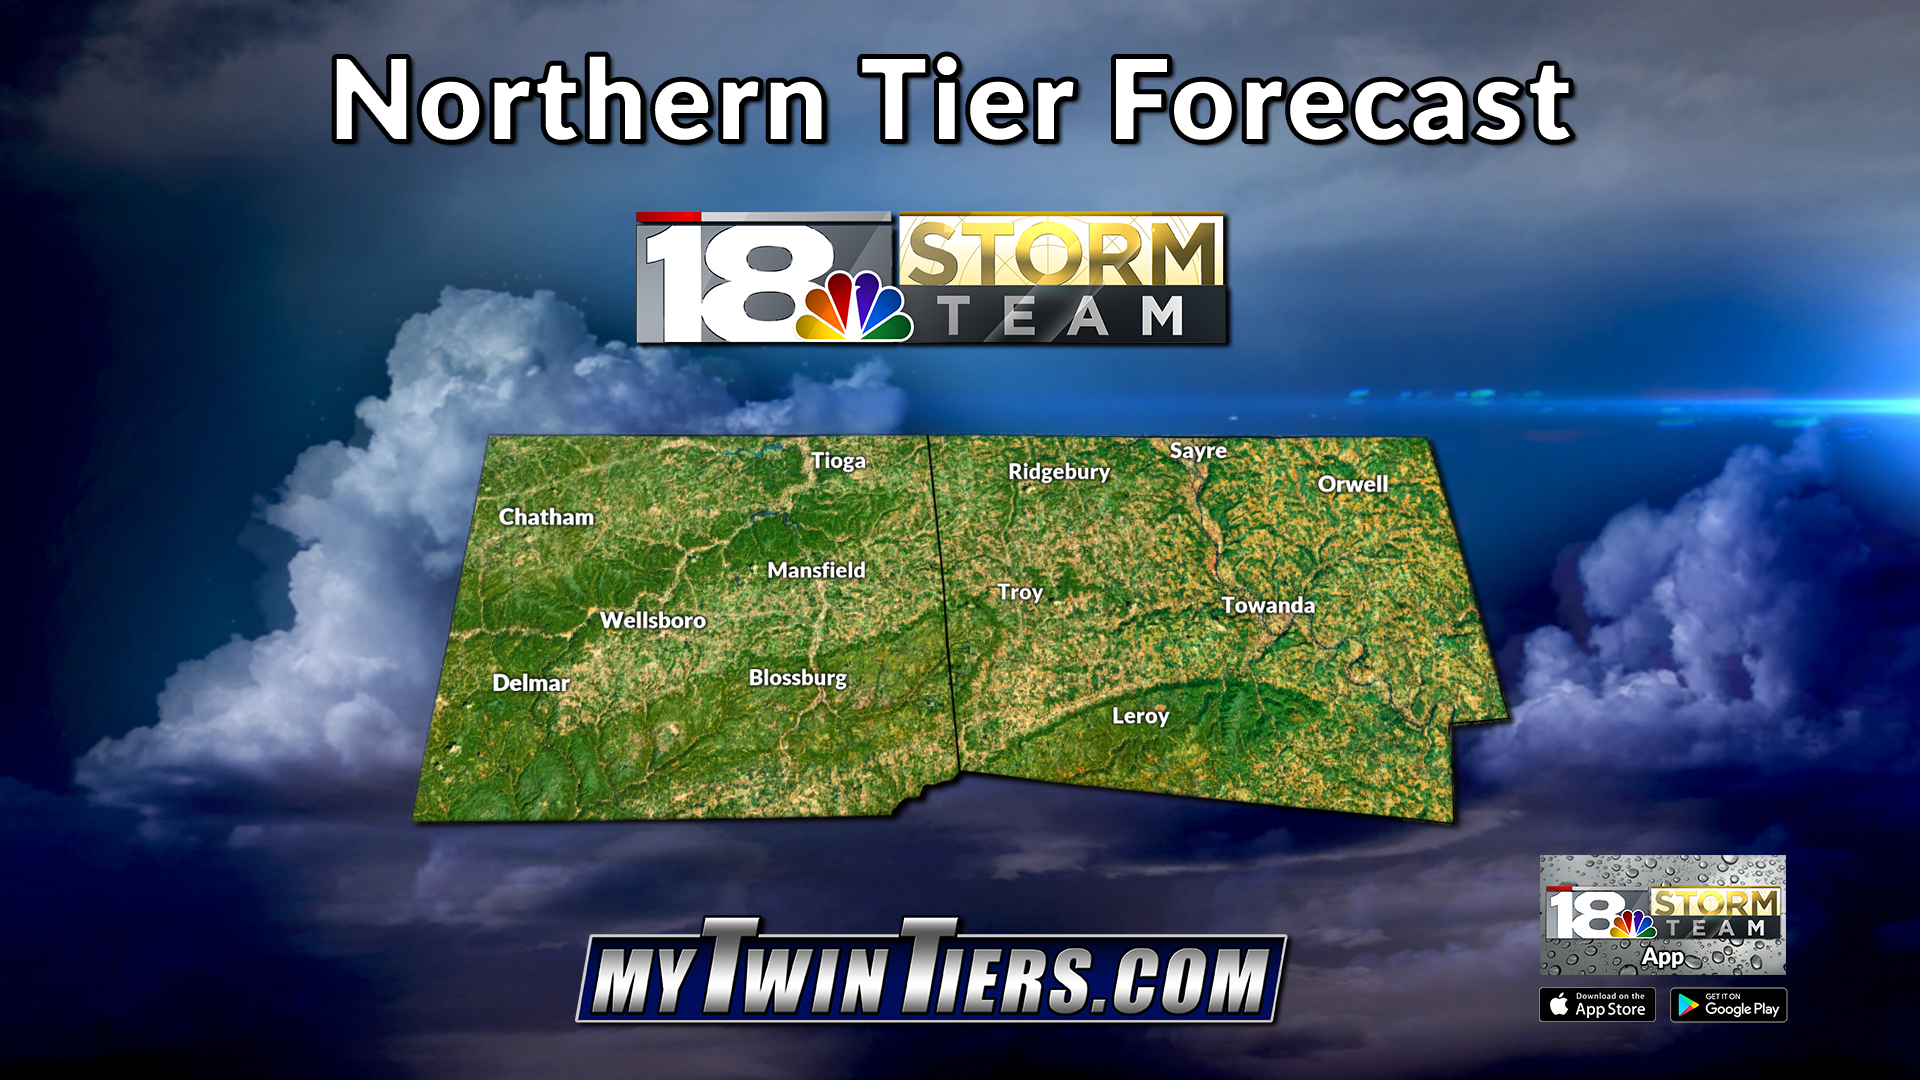 Leroy Ny Christmas Giveaway 2020 Regional Forecast   Northern Tier (11/16/2020)